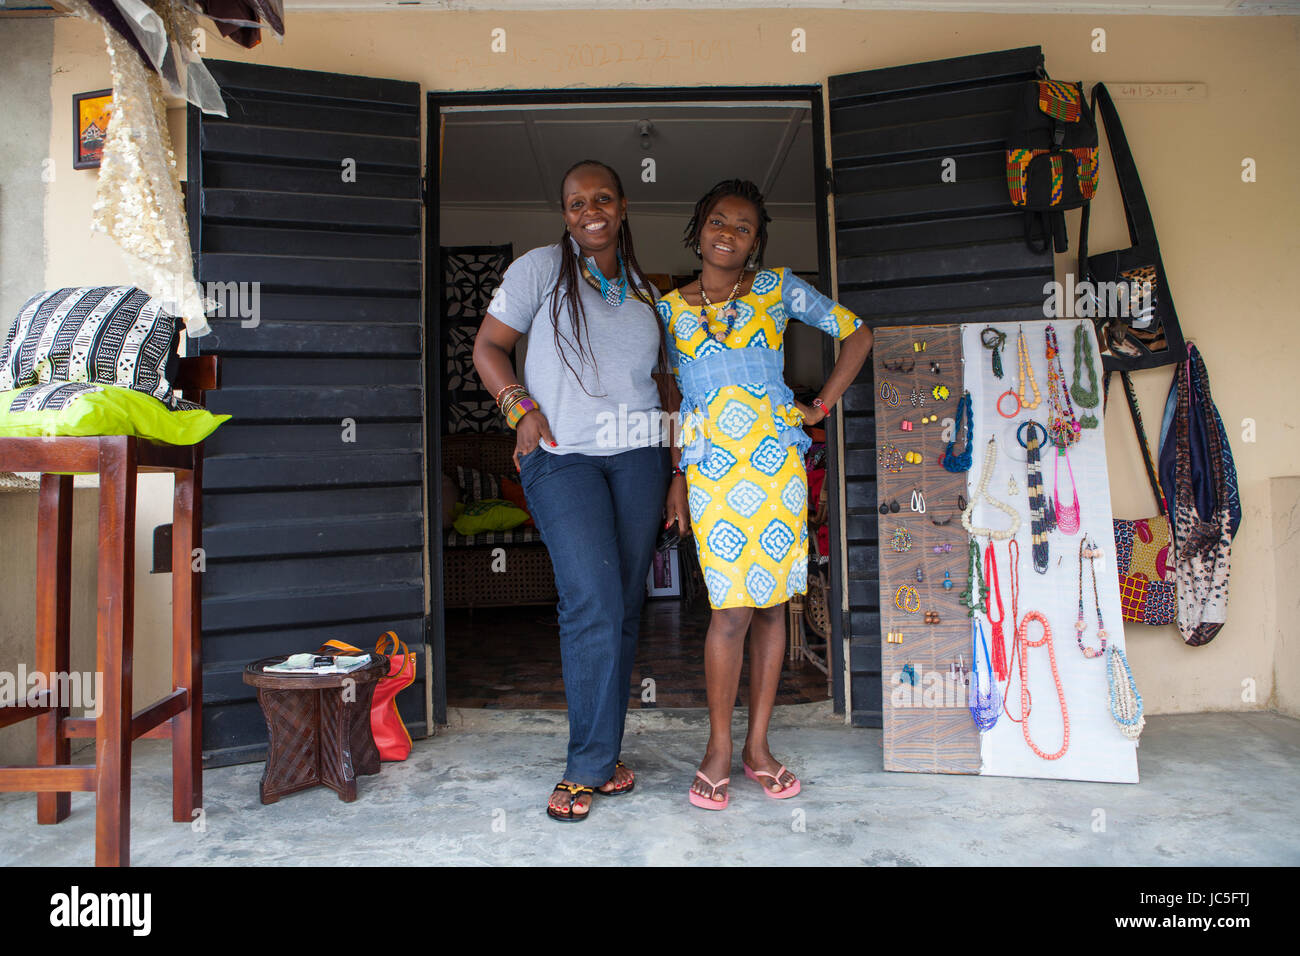 A small shop owner outside her shop, Nigeria, Africa. - Stock Image